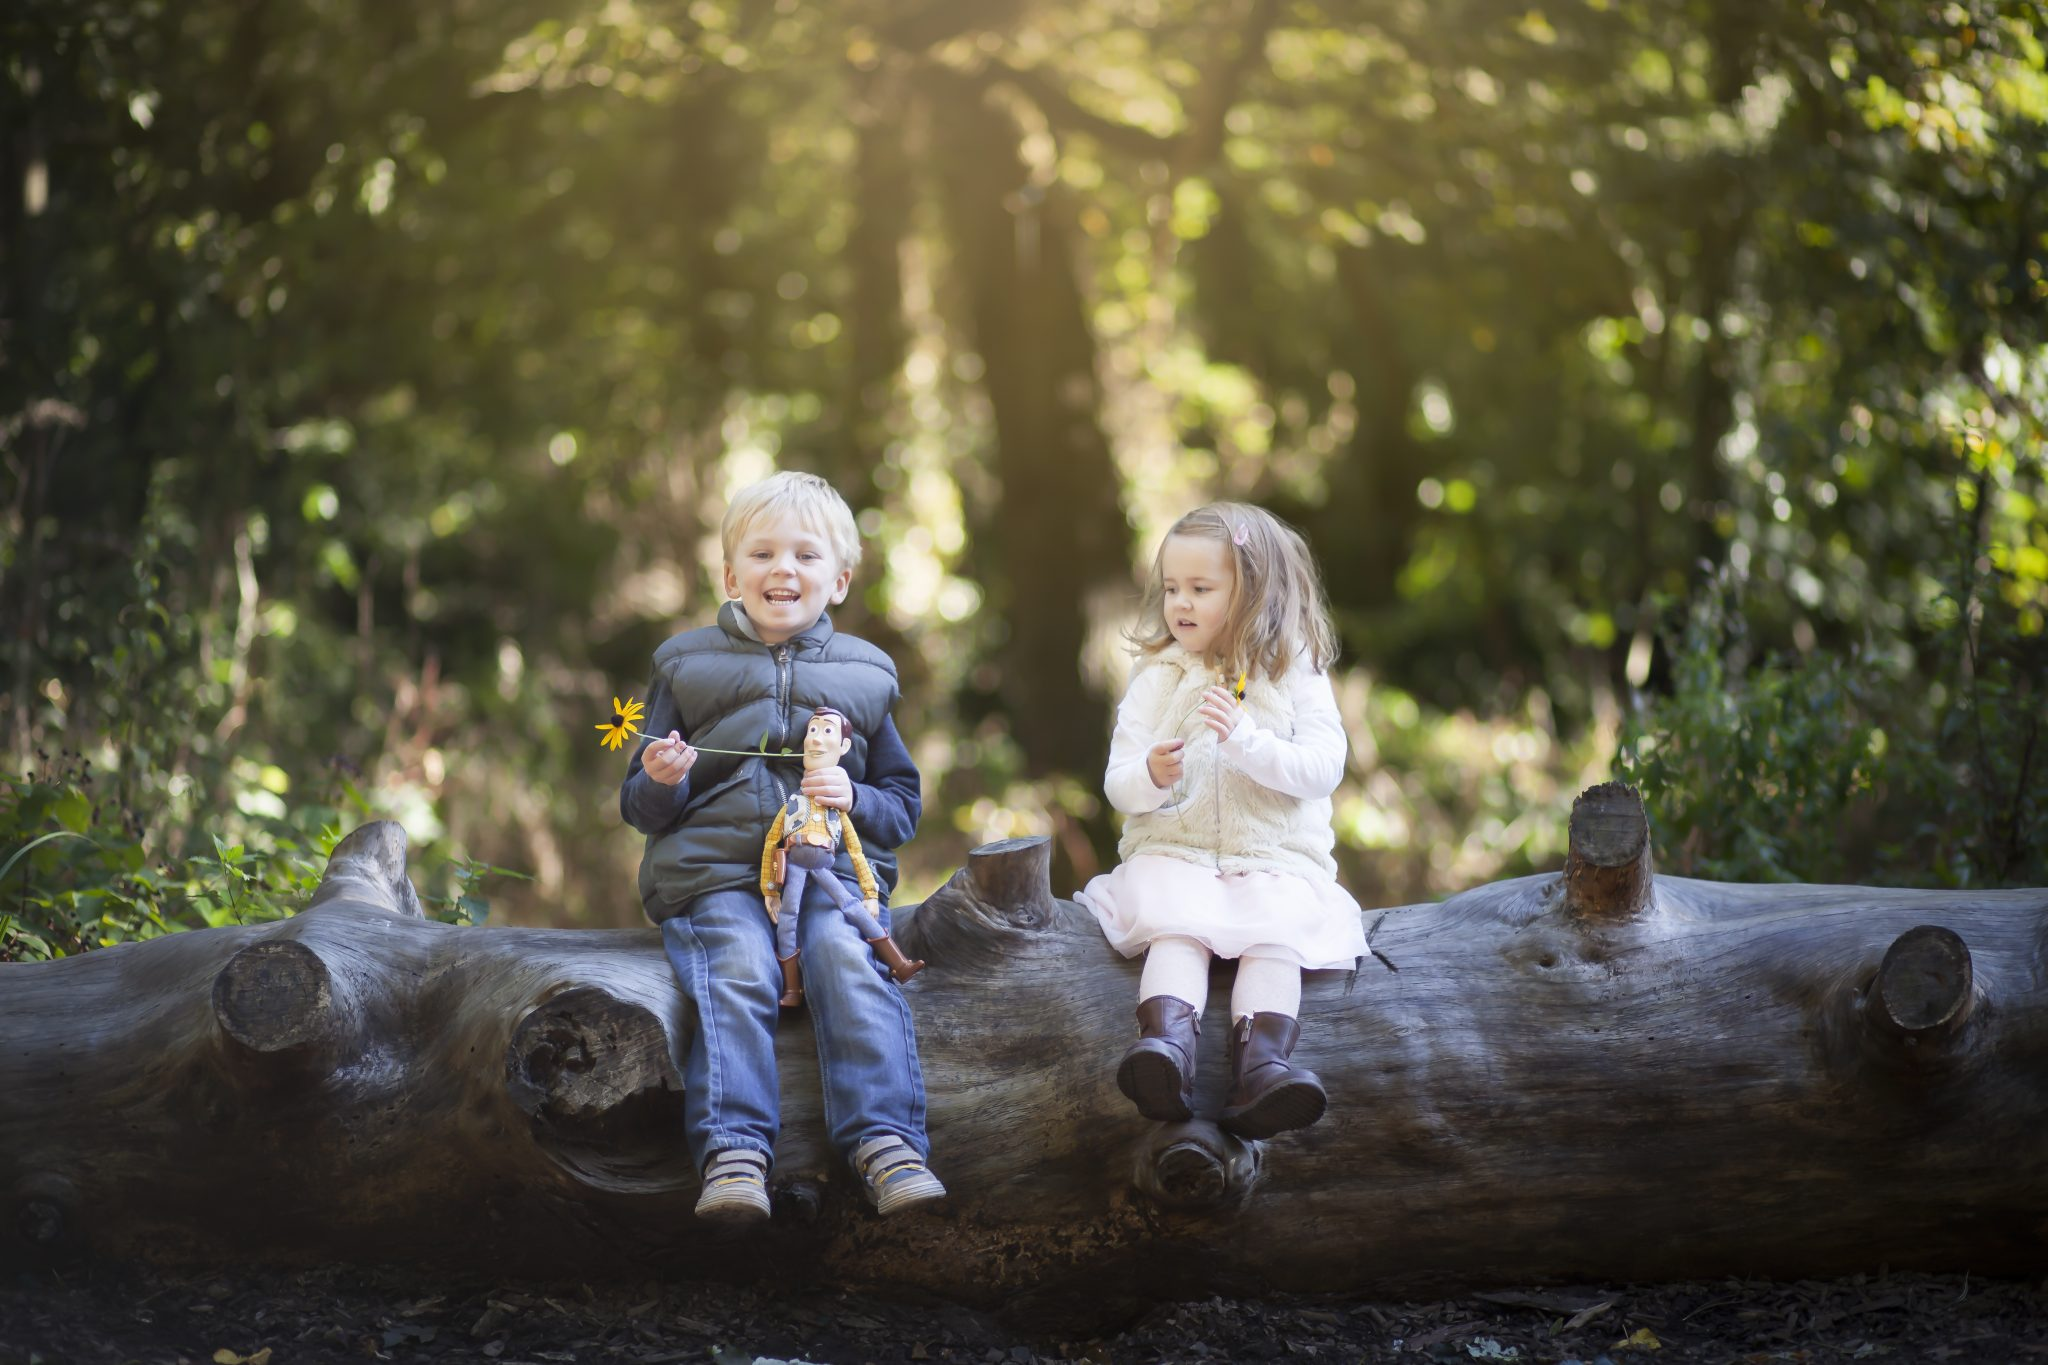 Portrait of Boy and girl sitting on a log dangling their legs and holding flowers in a Beckenham park in Autumn